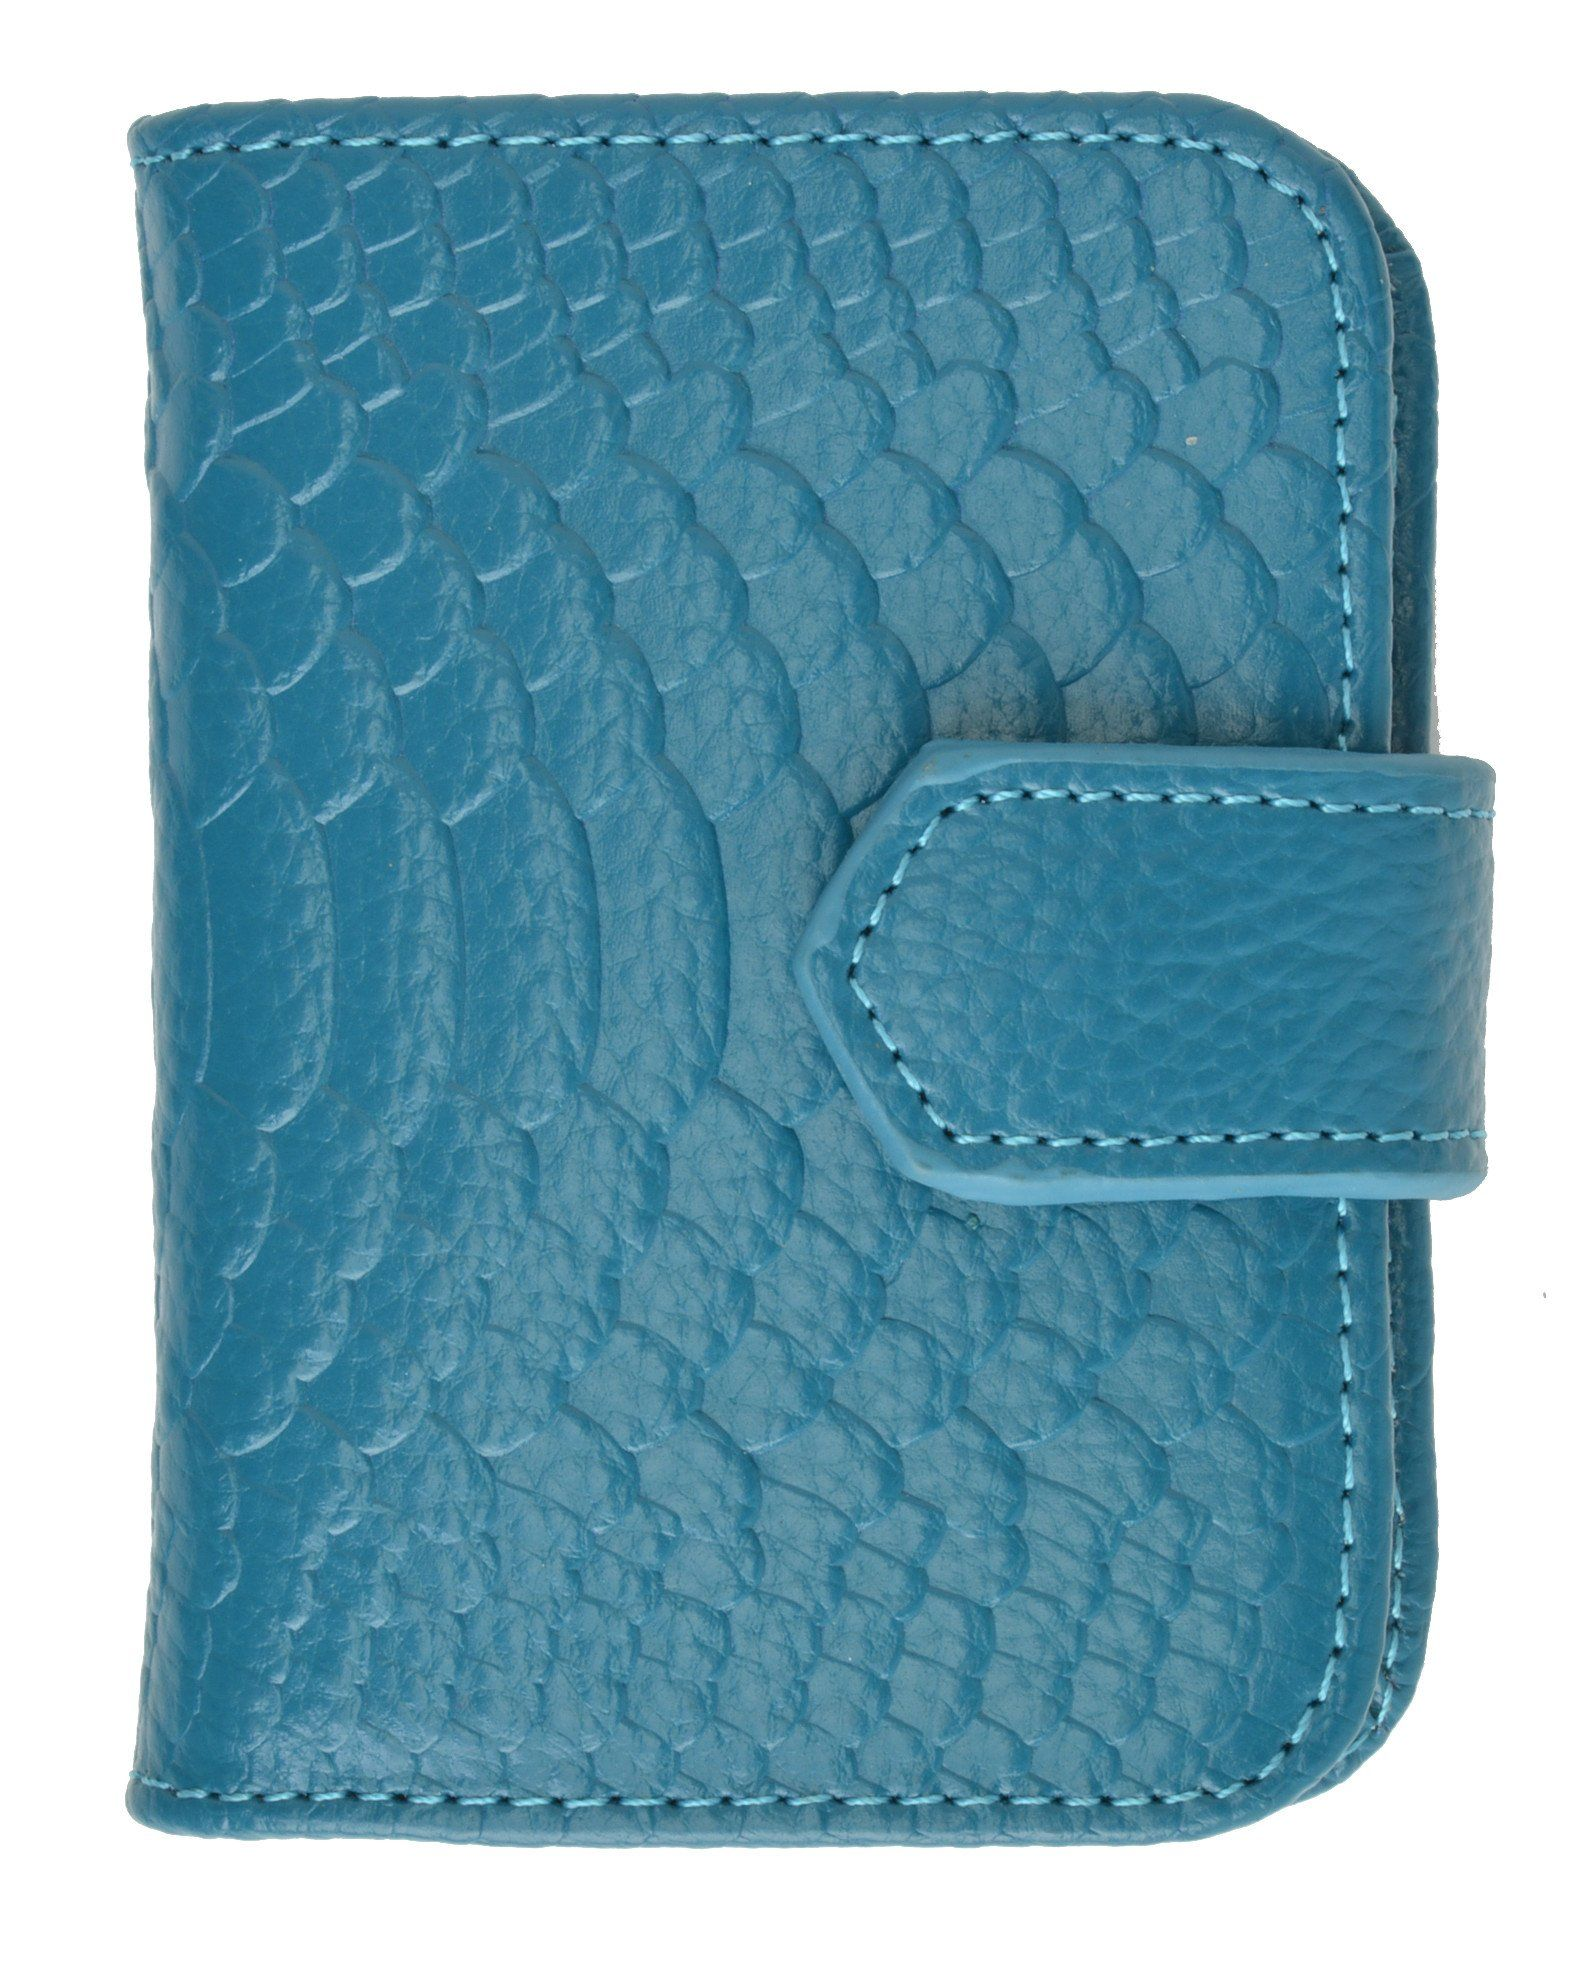 Genuine Leather Credit Card Holders 118 662 Products